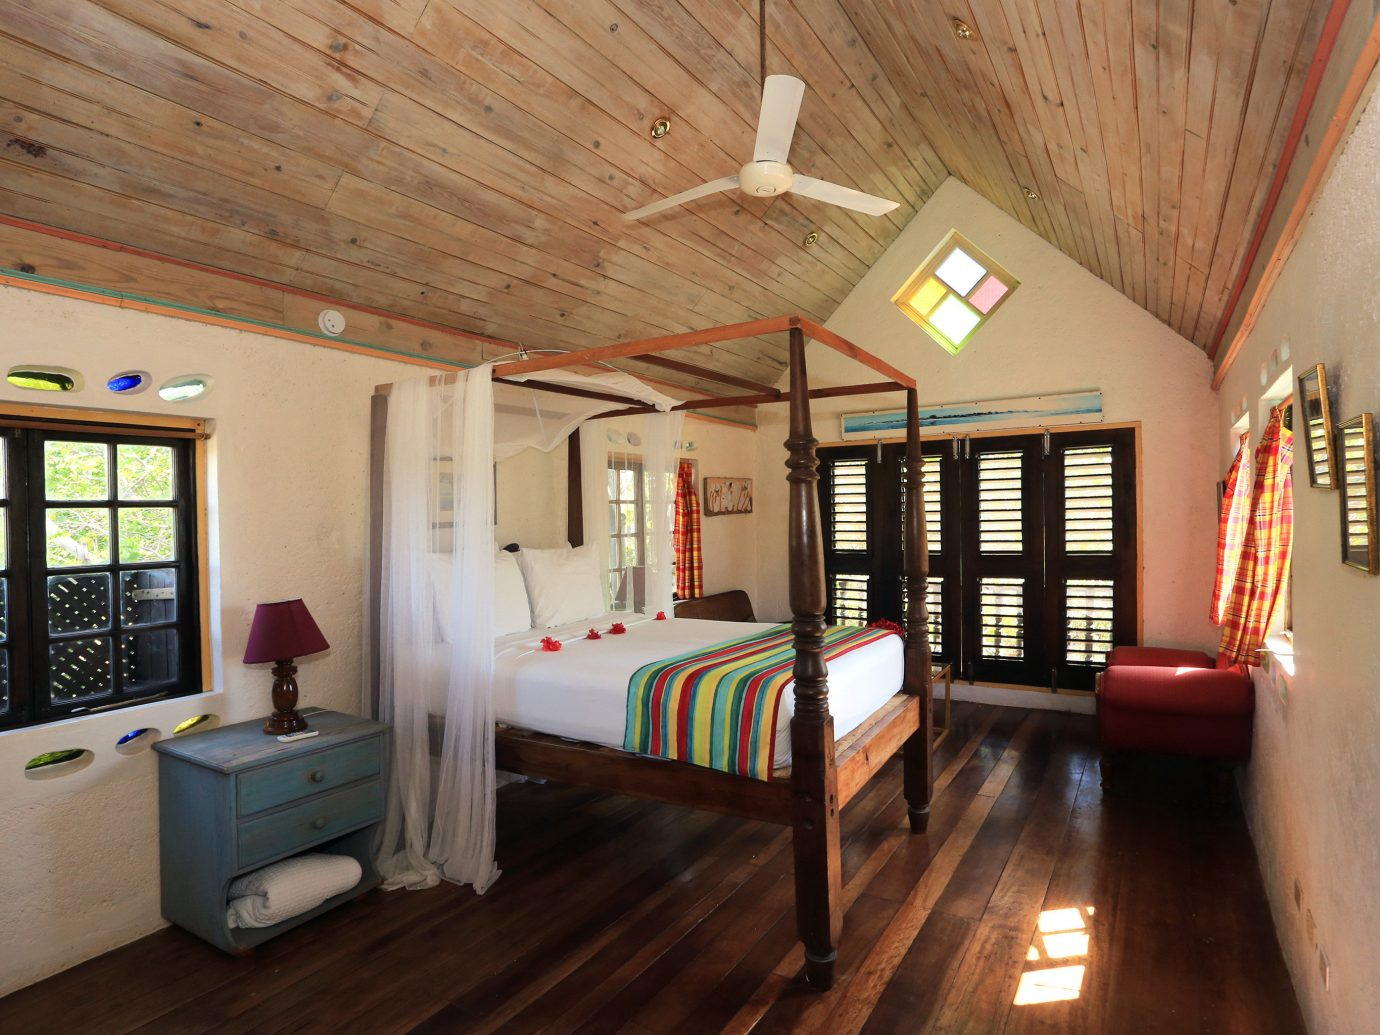 Bedroom at Jake's boutique hotel, Jamaica